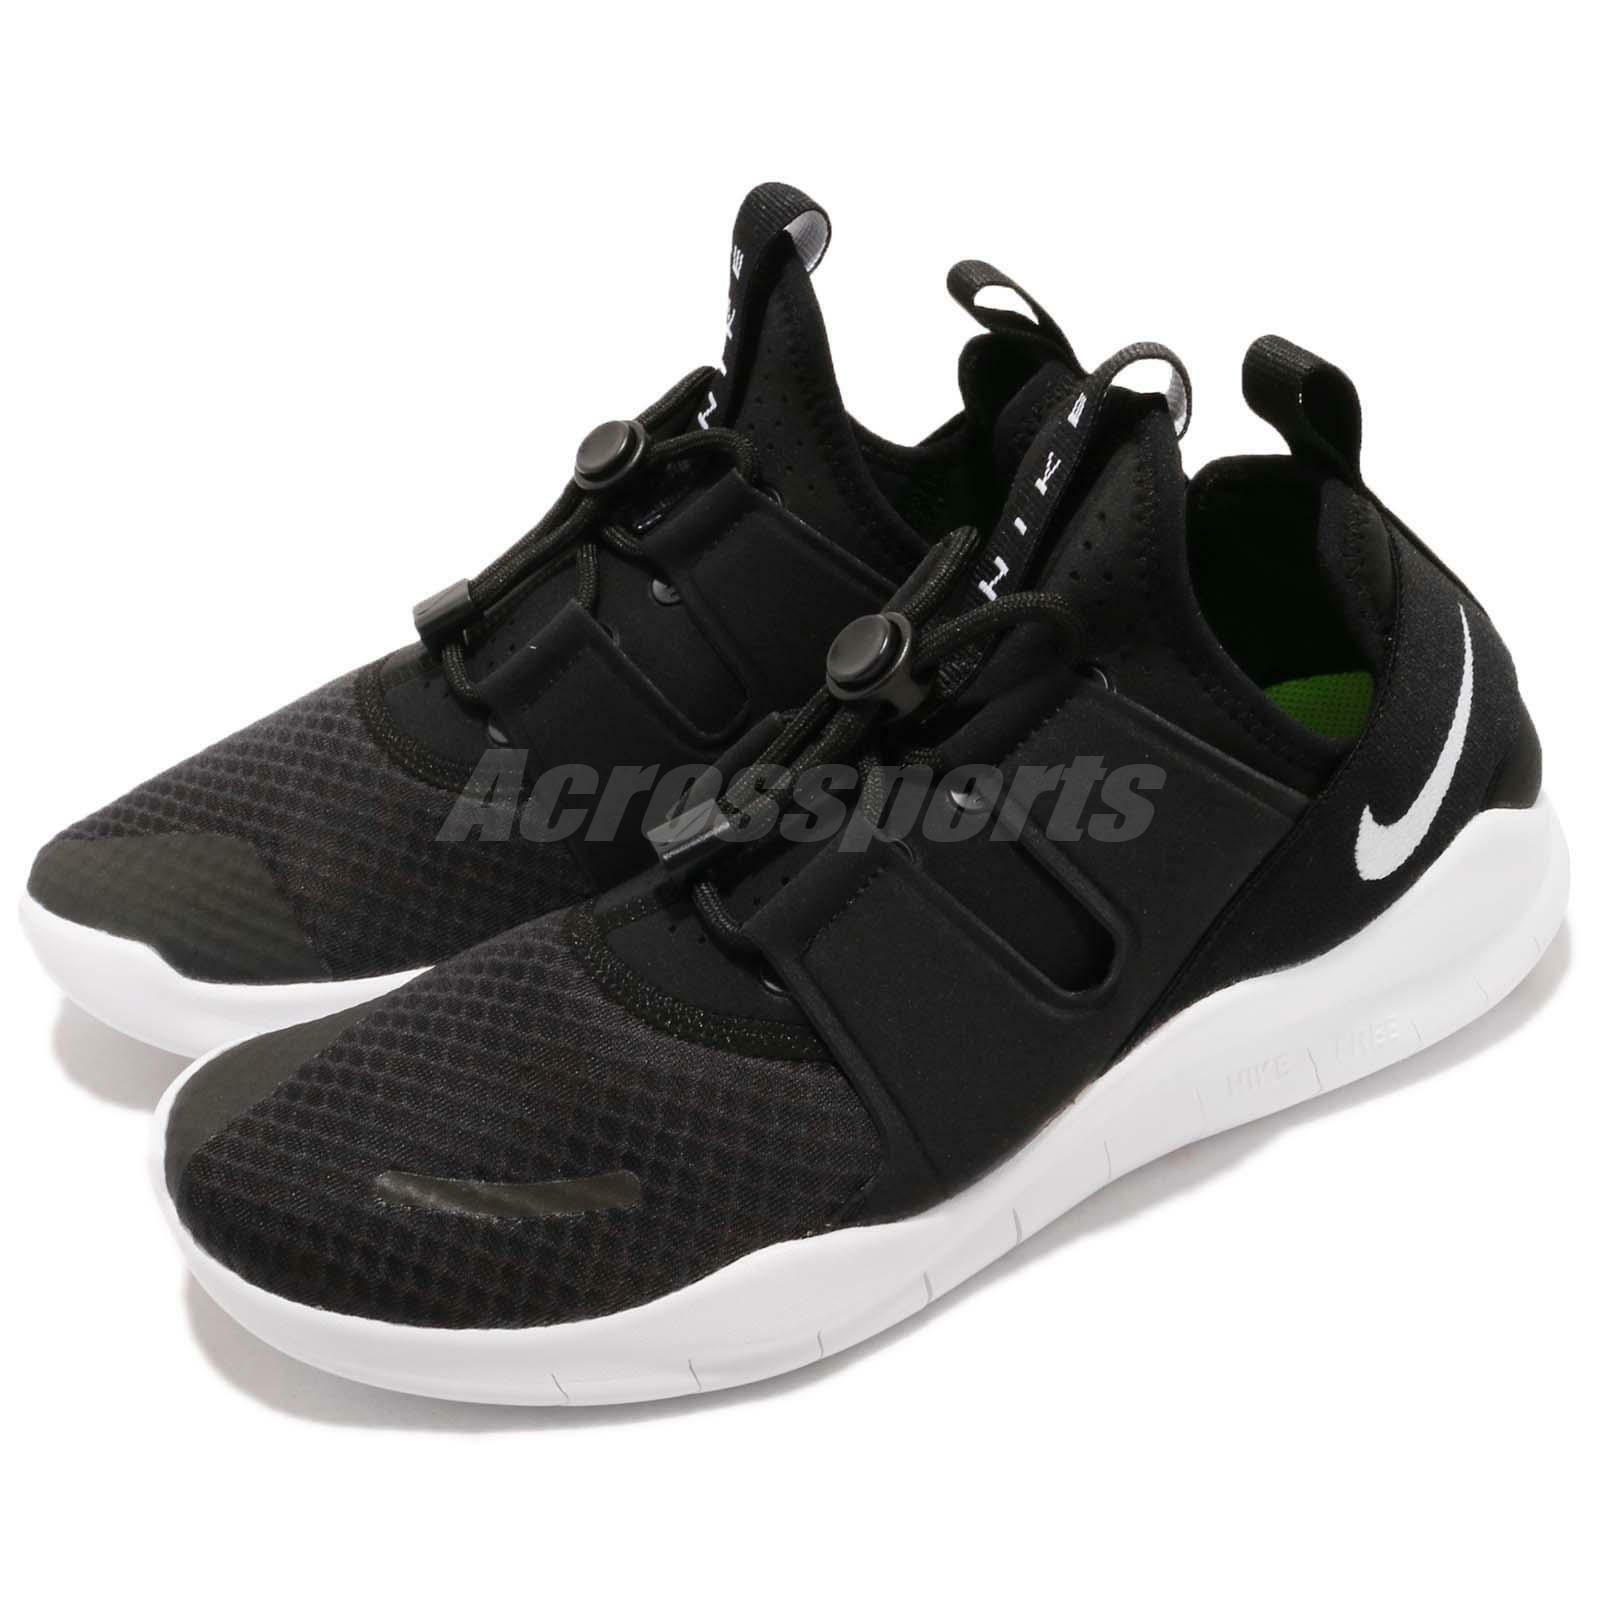 Nike Free RN CMTR 2018 Commuter Black White Mens Running shoes AA1620-001